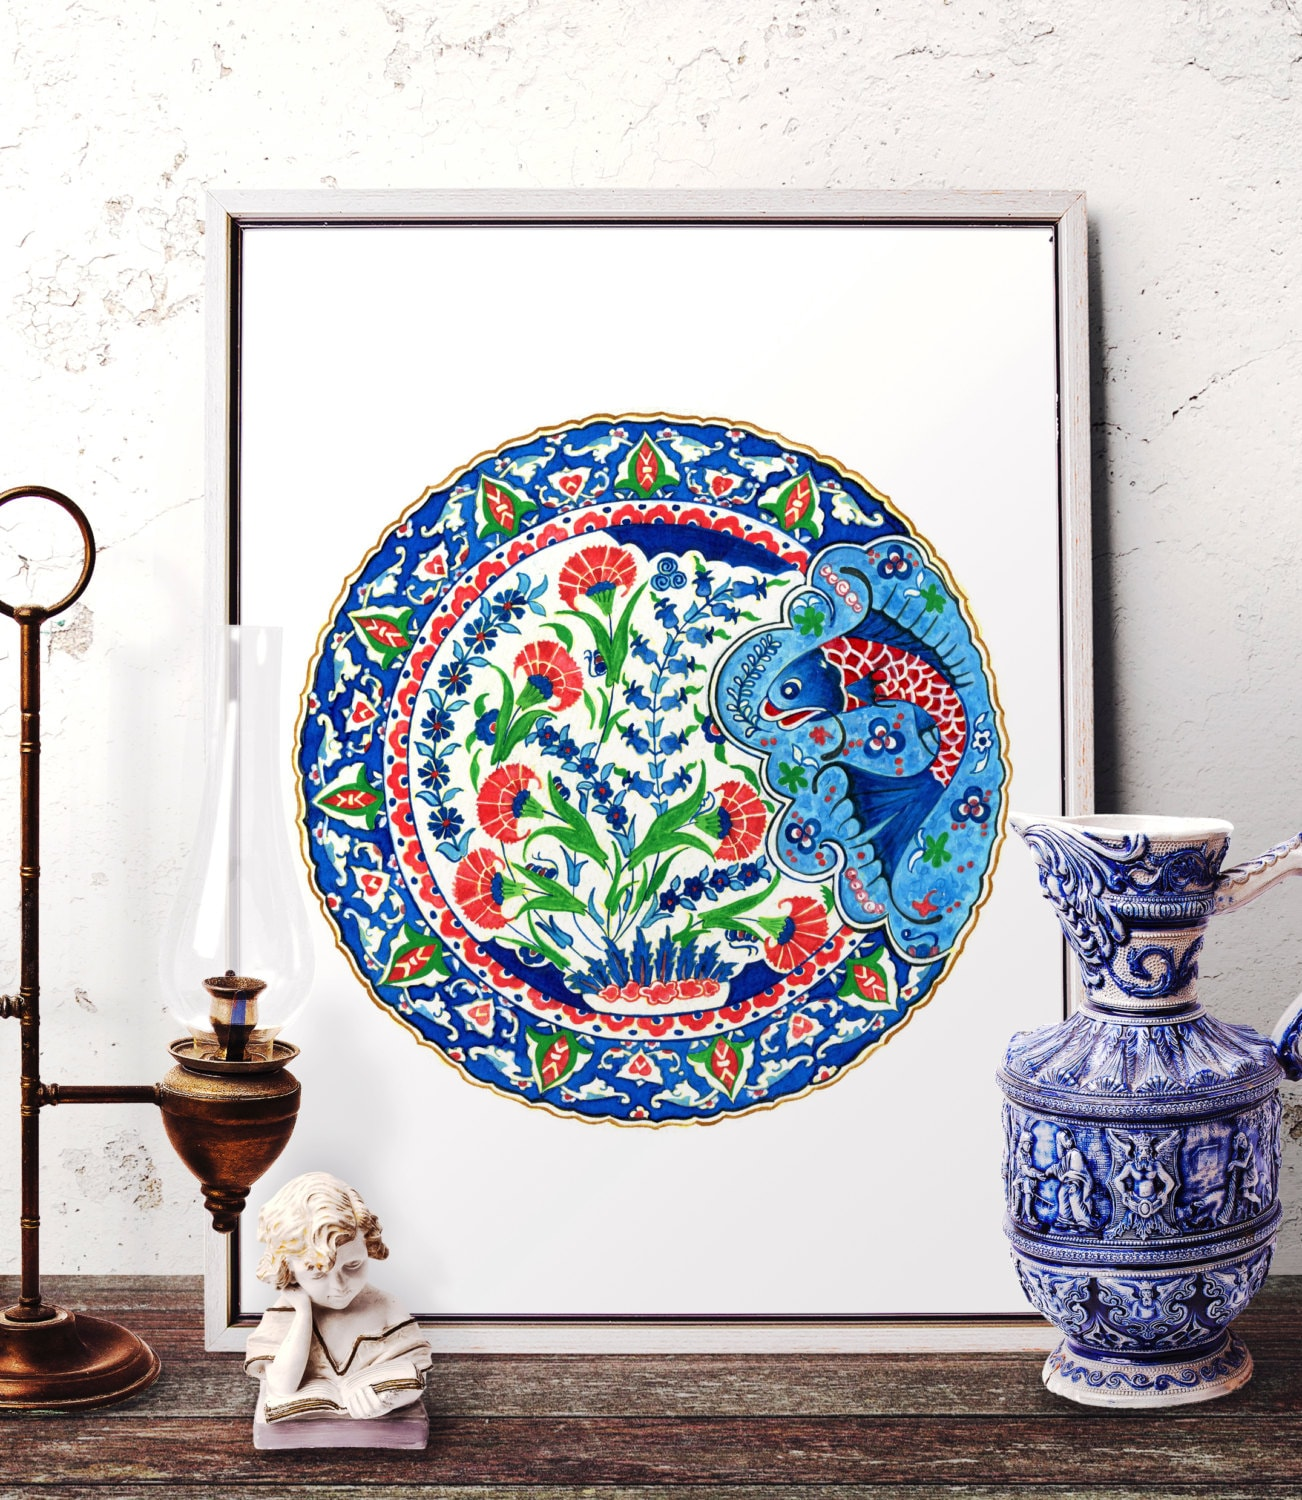 House Decoration Craft Kissing Fish Home Furnishings: Blue Fish Watercolor Wall Art Turkish Floral Fish Home Decor